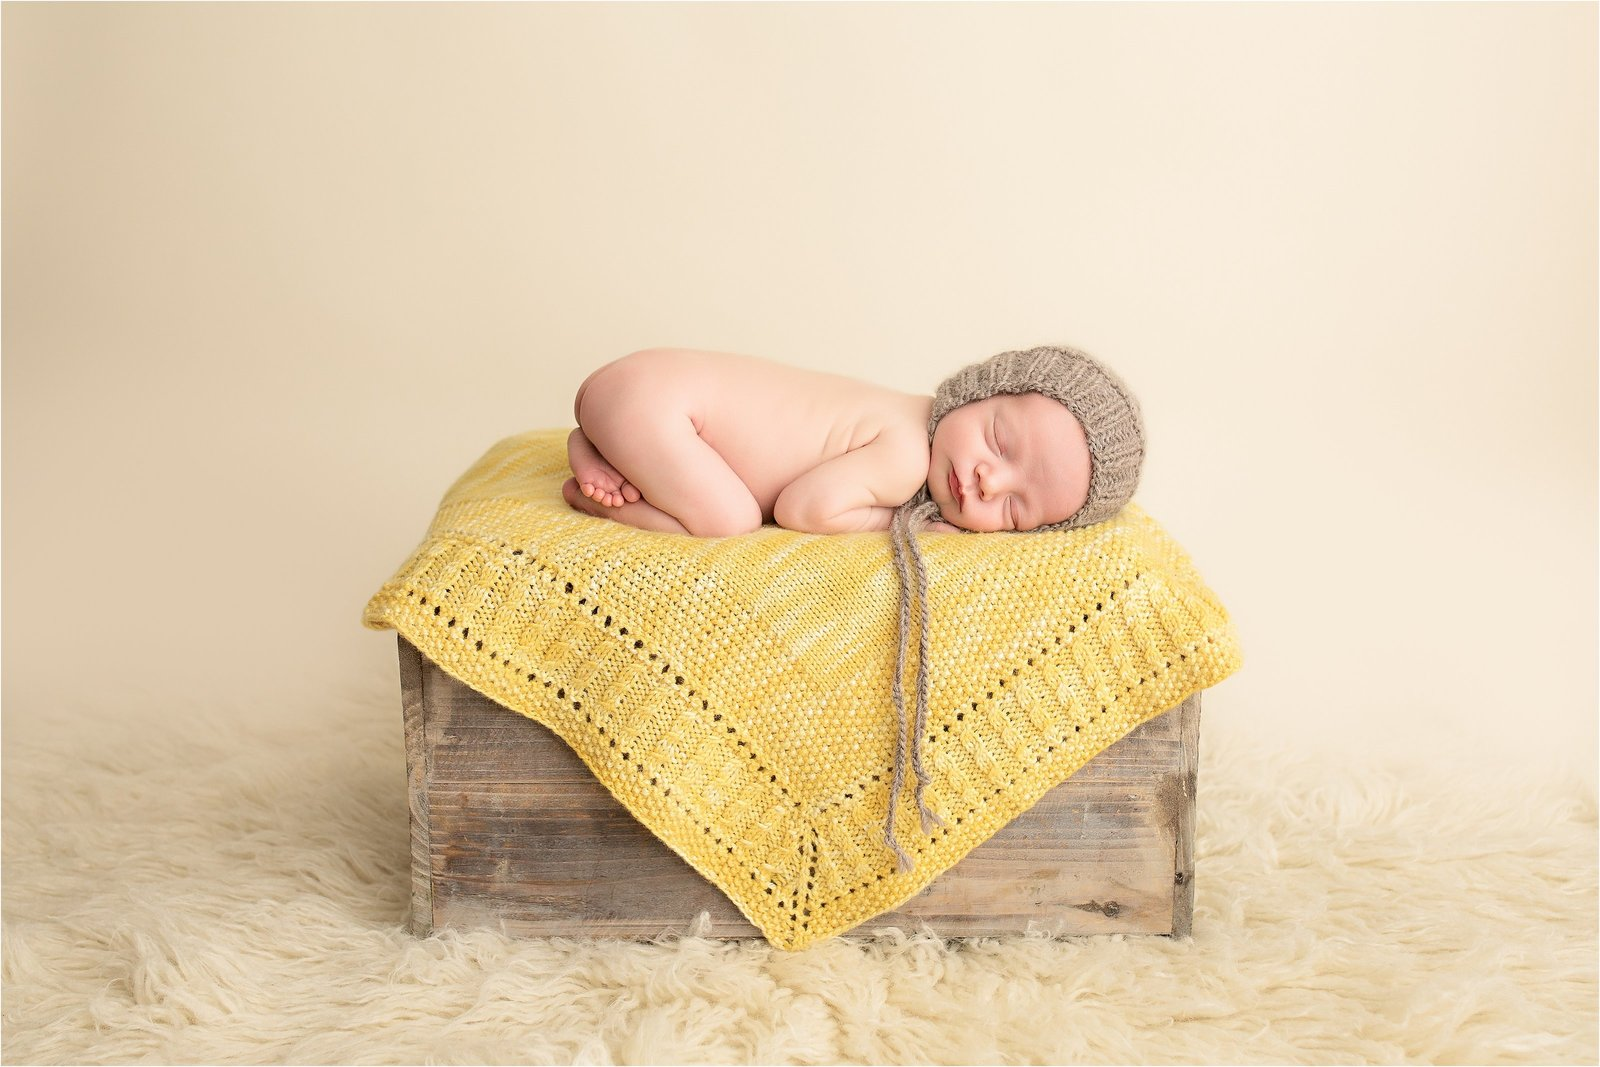 nj-newborn-photography-idalia-014